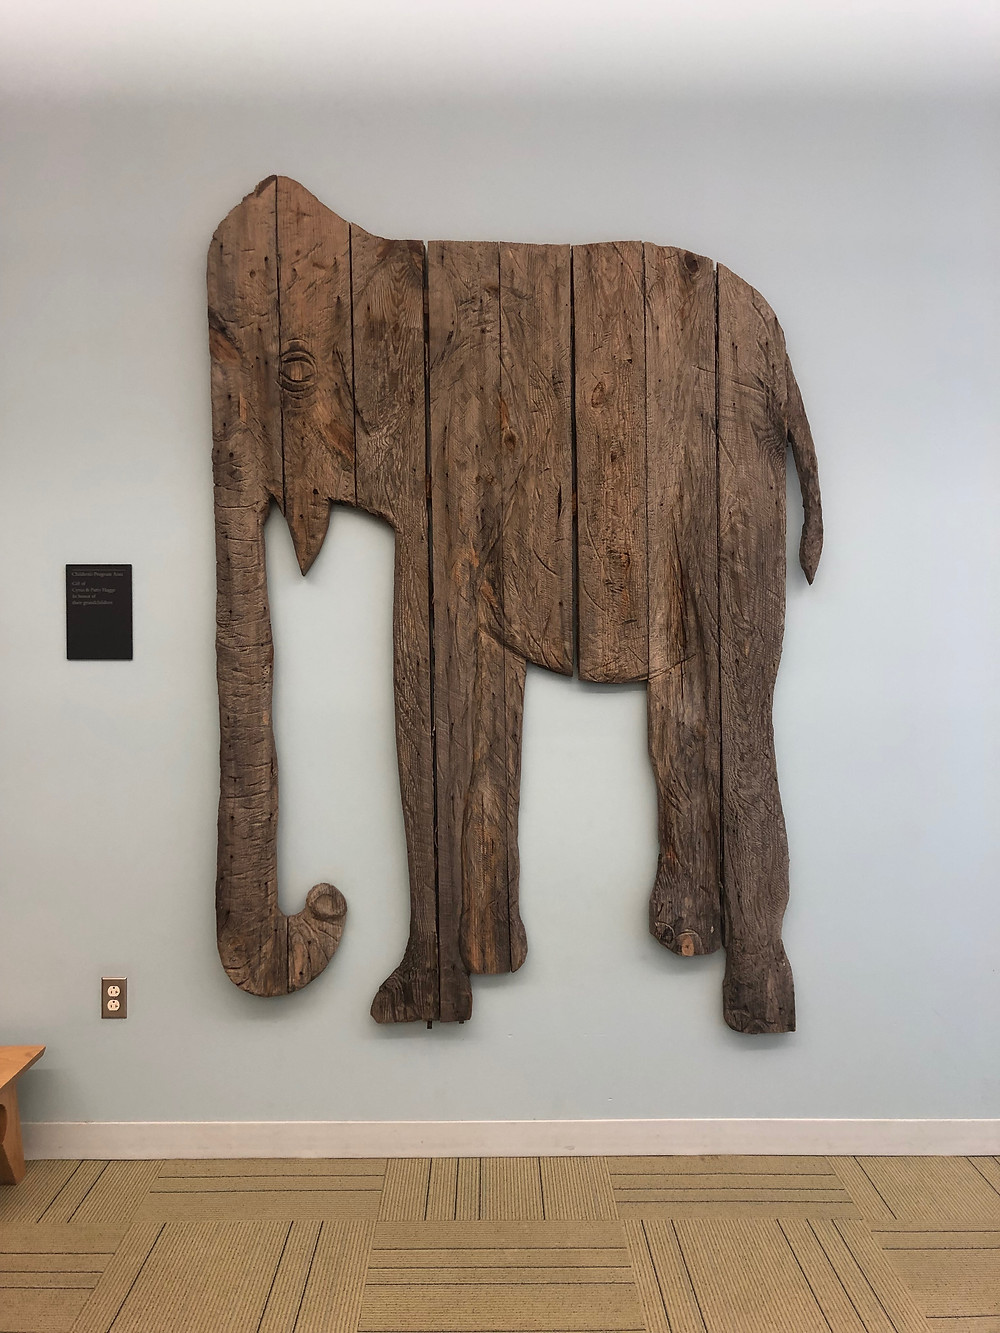 Elephant art in Children's section of Portland Public Main Library